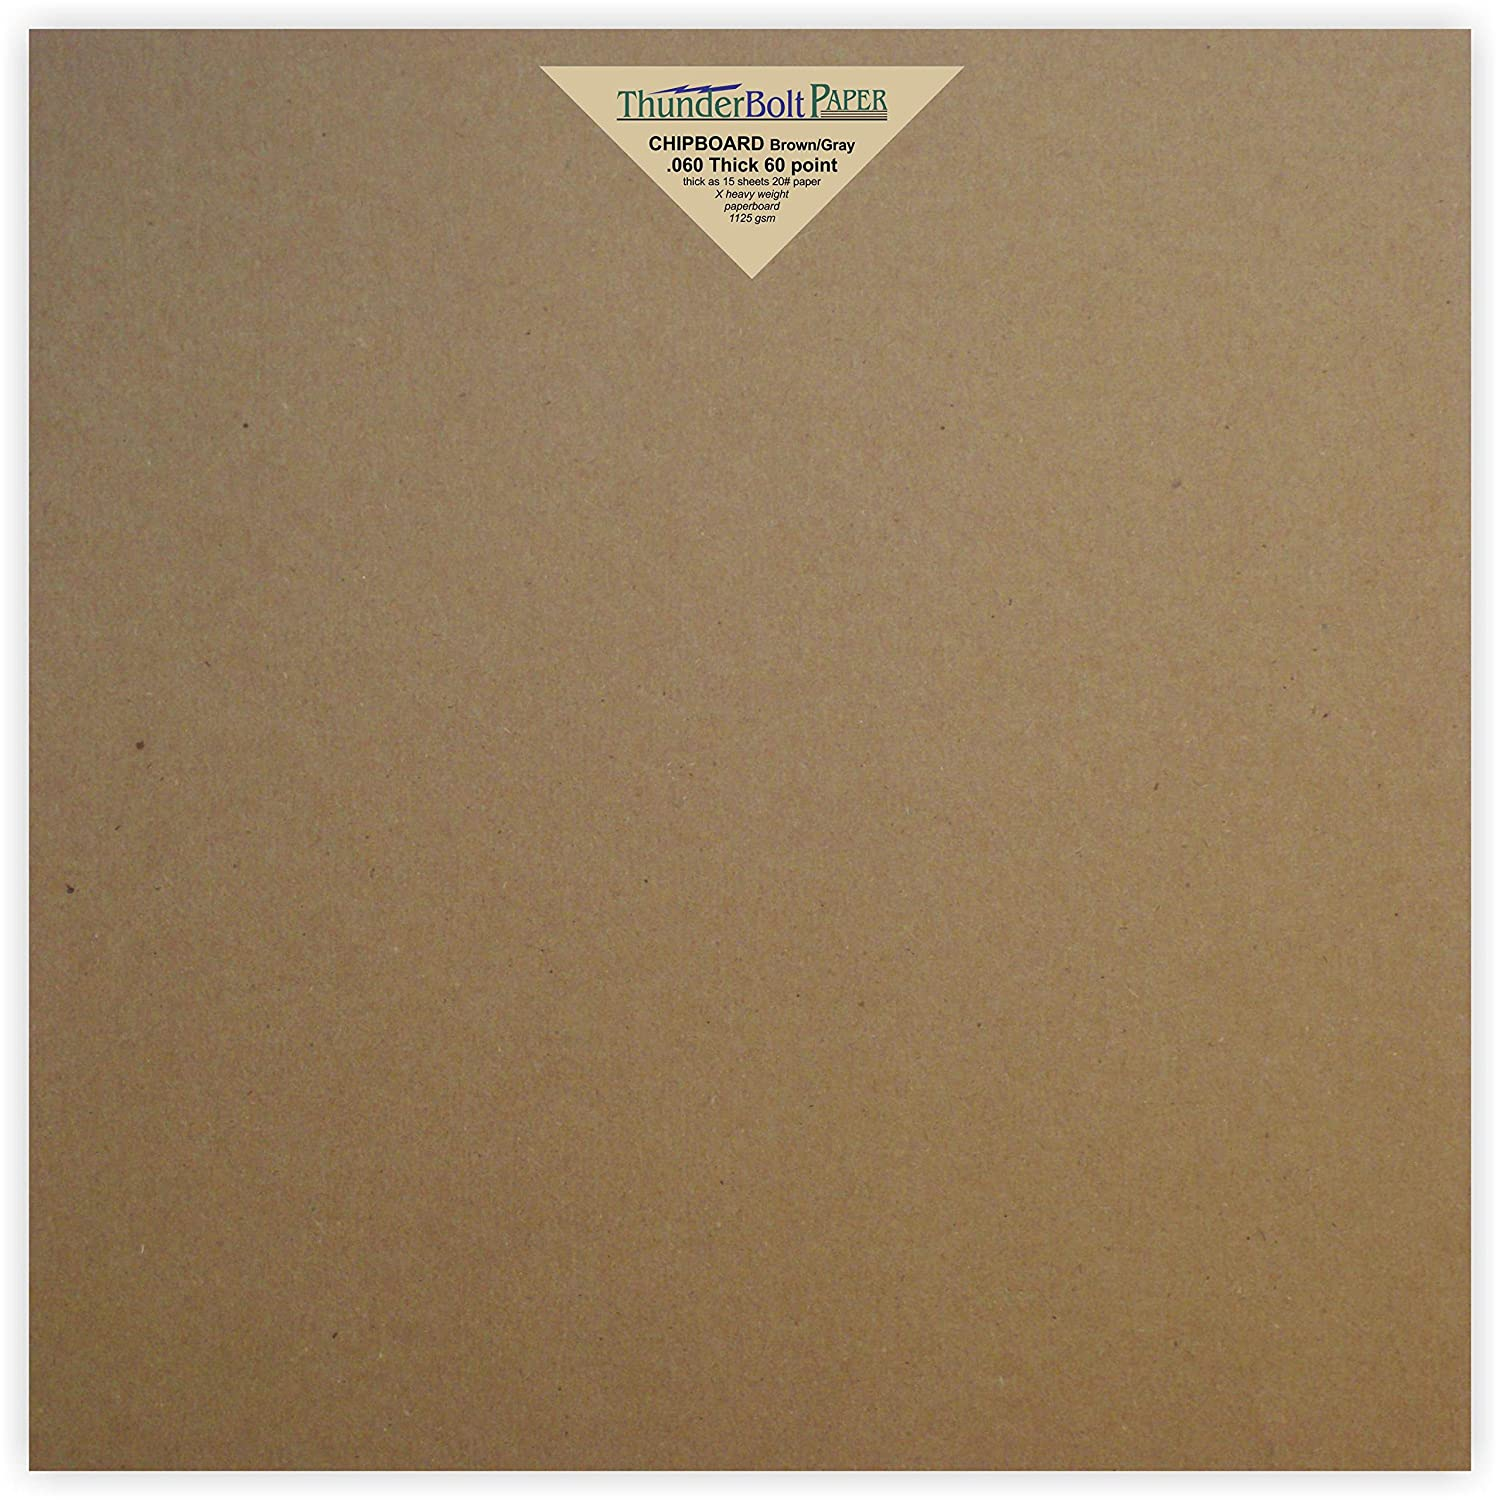 12 Sheets Brown/Gray Chipboard 60 Point Extra Thick 12 X 12 (12X12 Inches) Scrapbook Album|Cover Size .060 Caliper Extra X Heavy Cardboard as Thick as 15 Sheets 20# Paper TBP